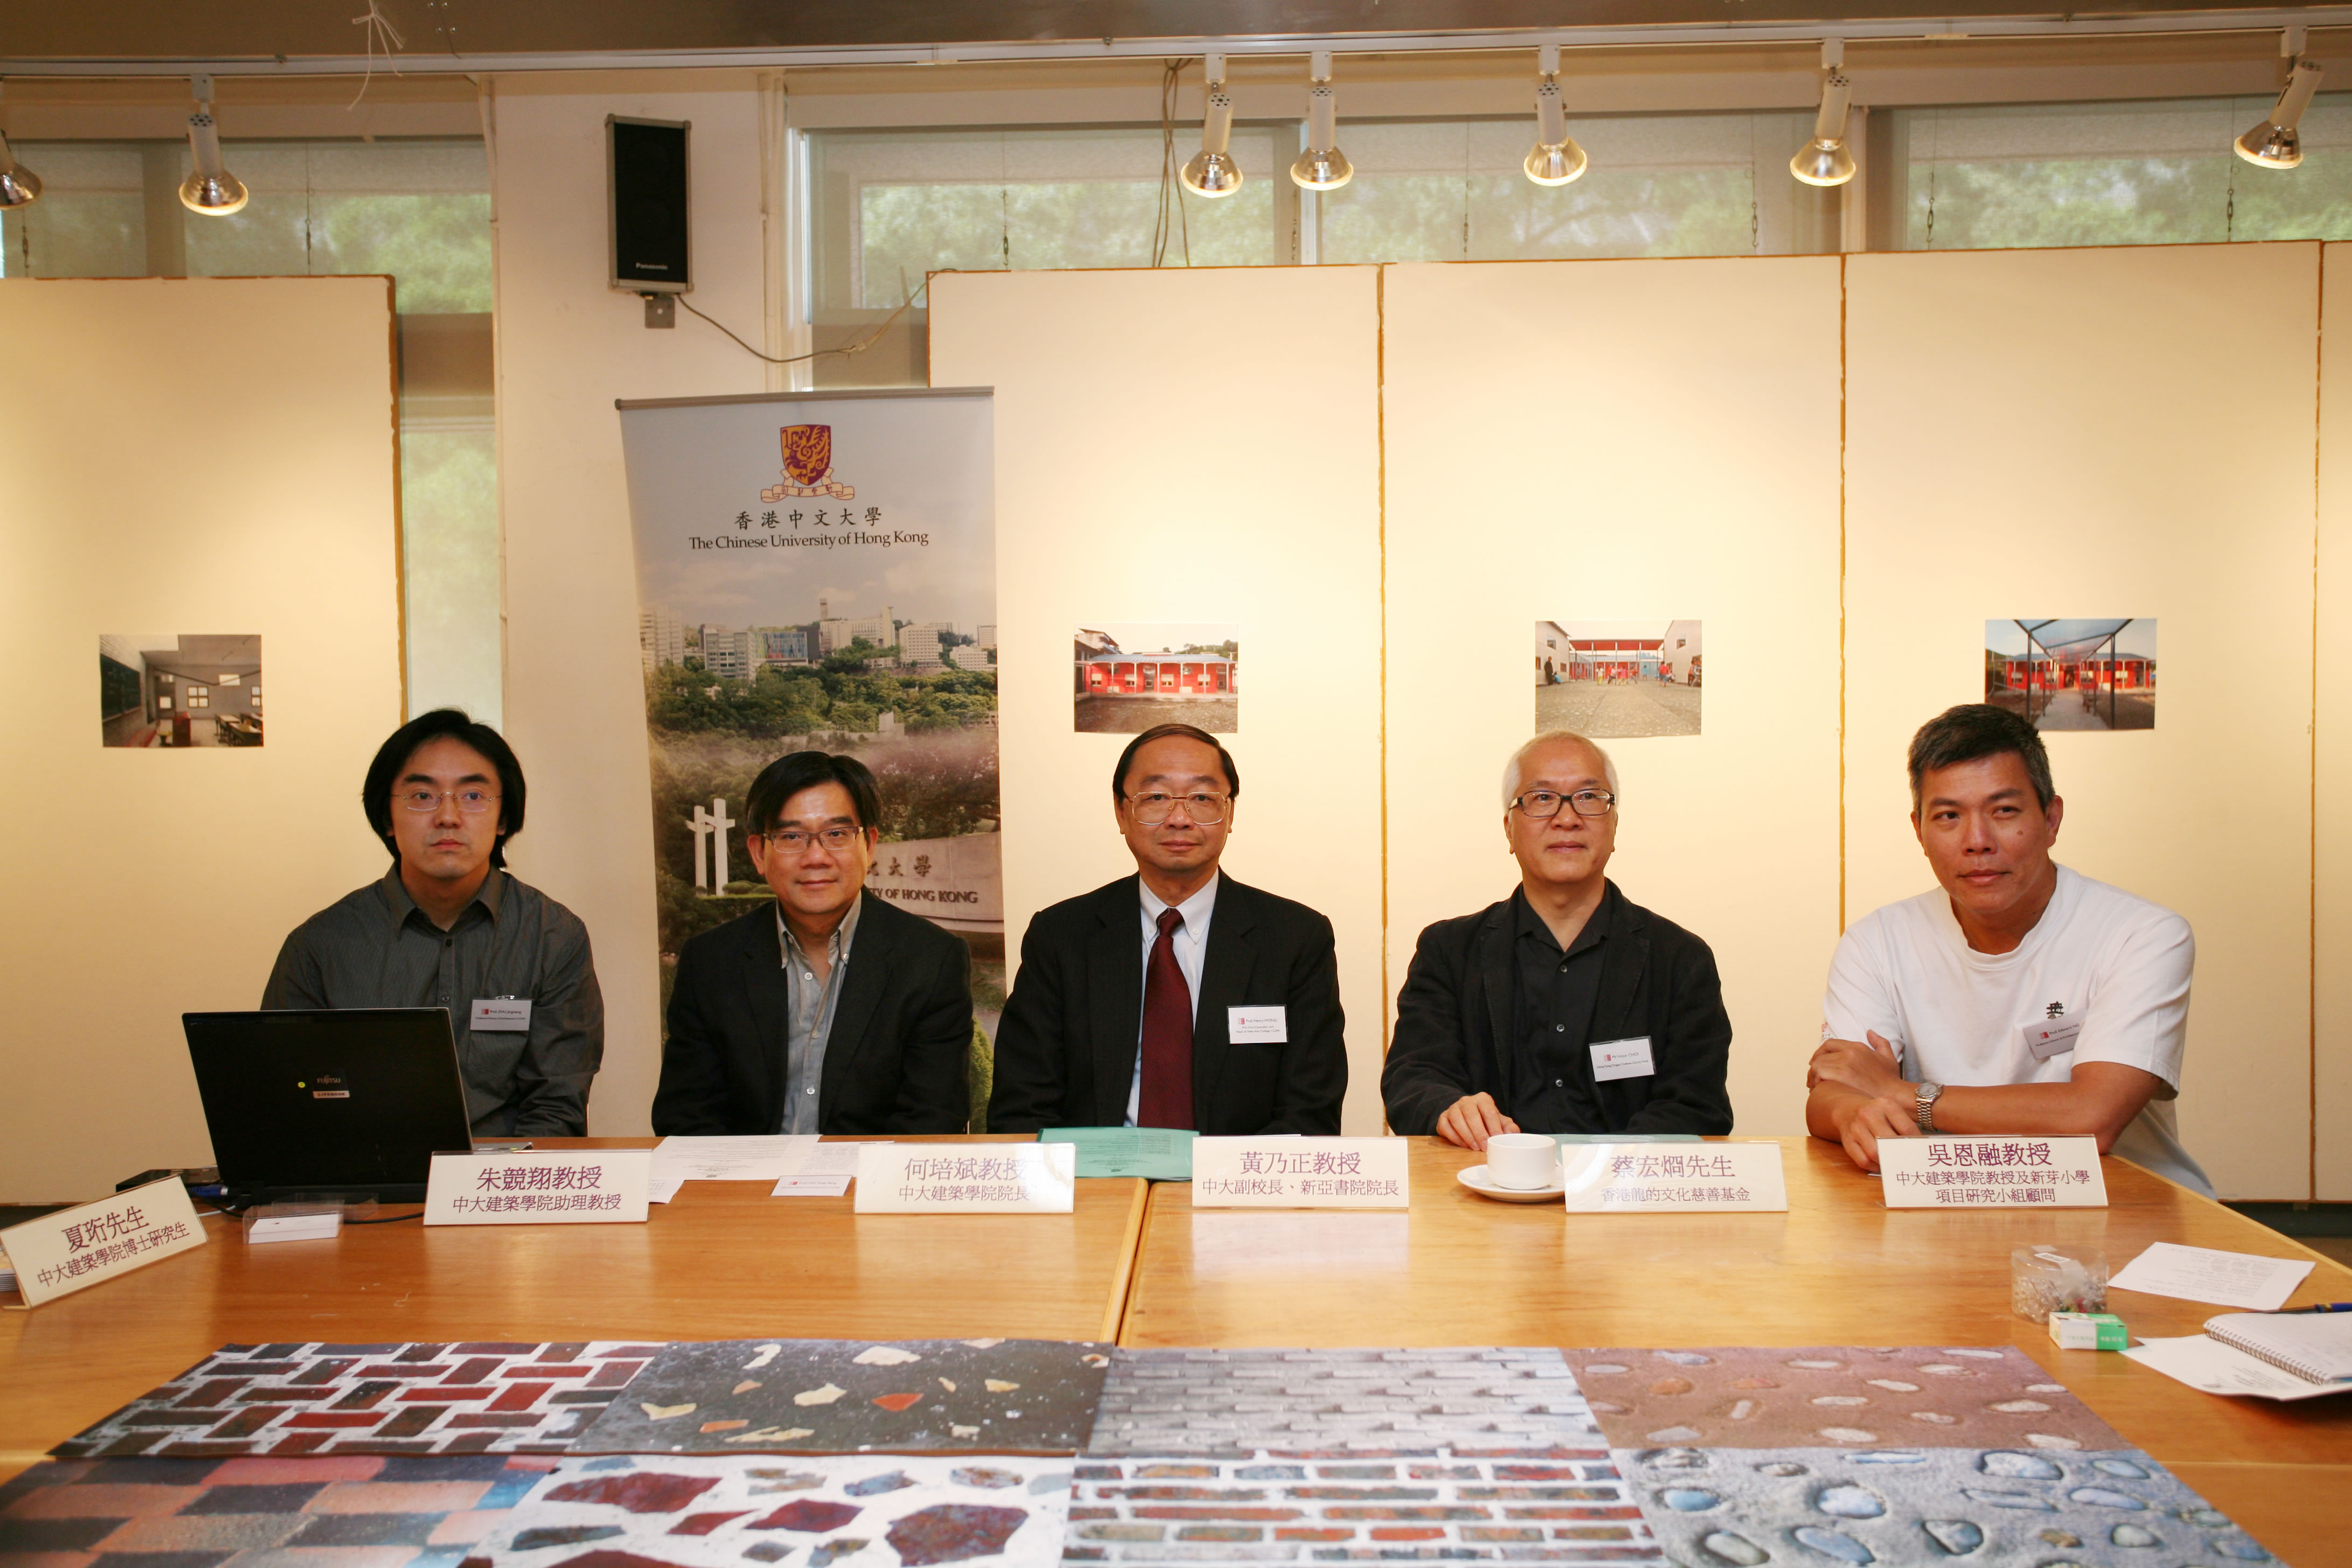 (From left)  Prof. ZHU Jingxiang, Assistant Professor, School of Architecture, CUHK;  Prof. HO Puay-peng, Director, School of Architecture, CUHK; Prof. Henry WONG Nai-ching, Pro-Vice-Chancellor and Head of New Asia College, CUHK; Mr. Victor CHOI, Hong Kong Dragon Culture Charity Fund; and Prof. Edward NG Yan-yung, Co-investigator of New Bud Primary School Project, and Professor, School of Architecture, CUHK